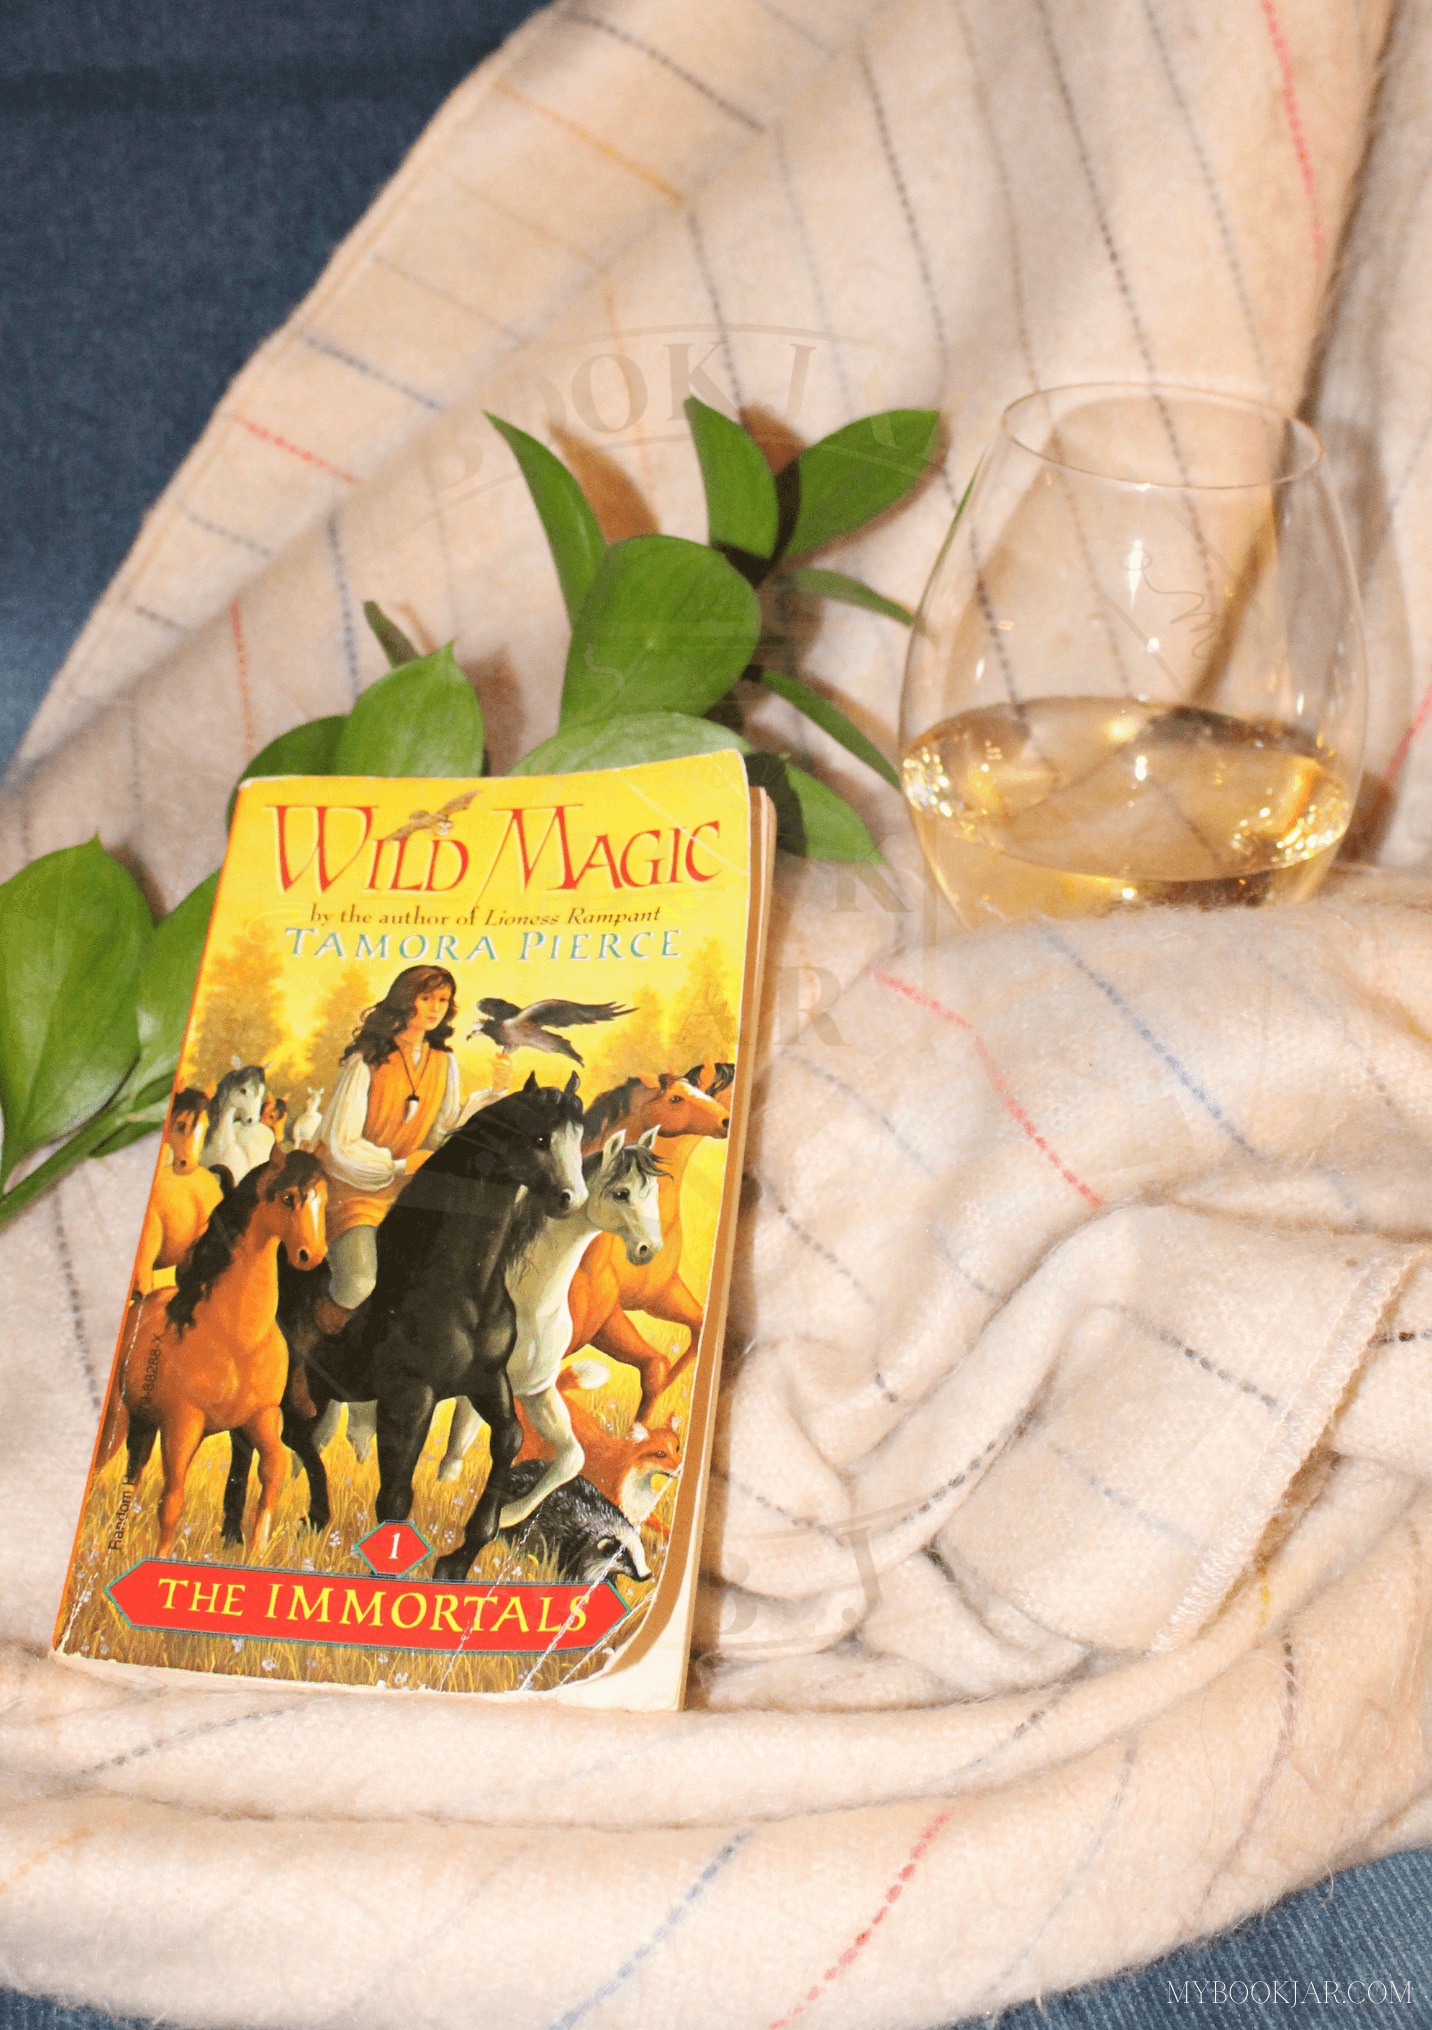 image of the book Wild Magic on a beige striped blanket with a glass of white wine and a piece of greenery.